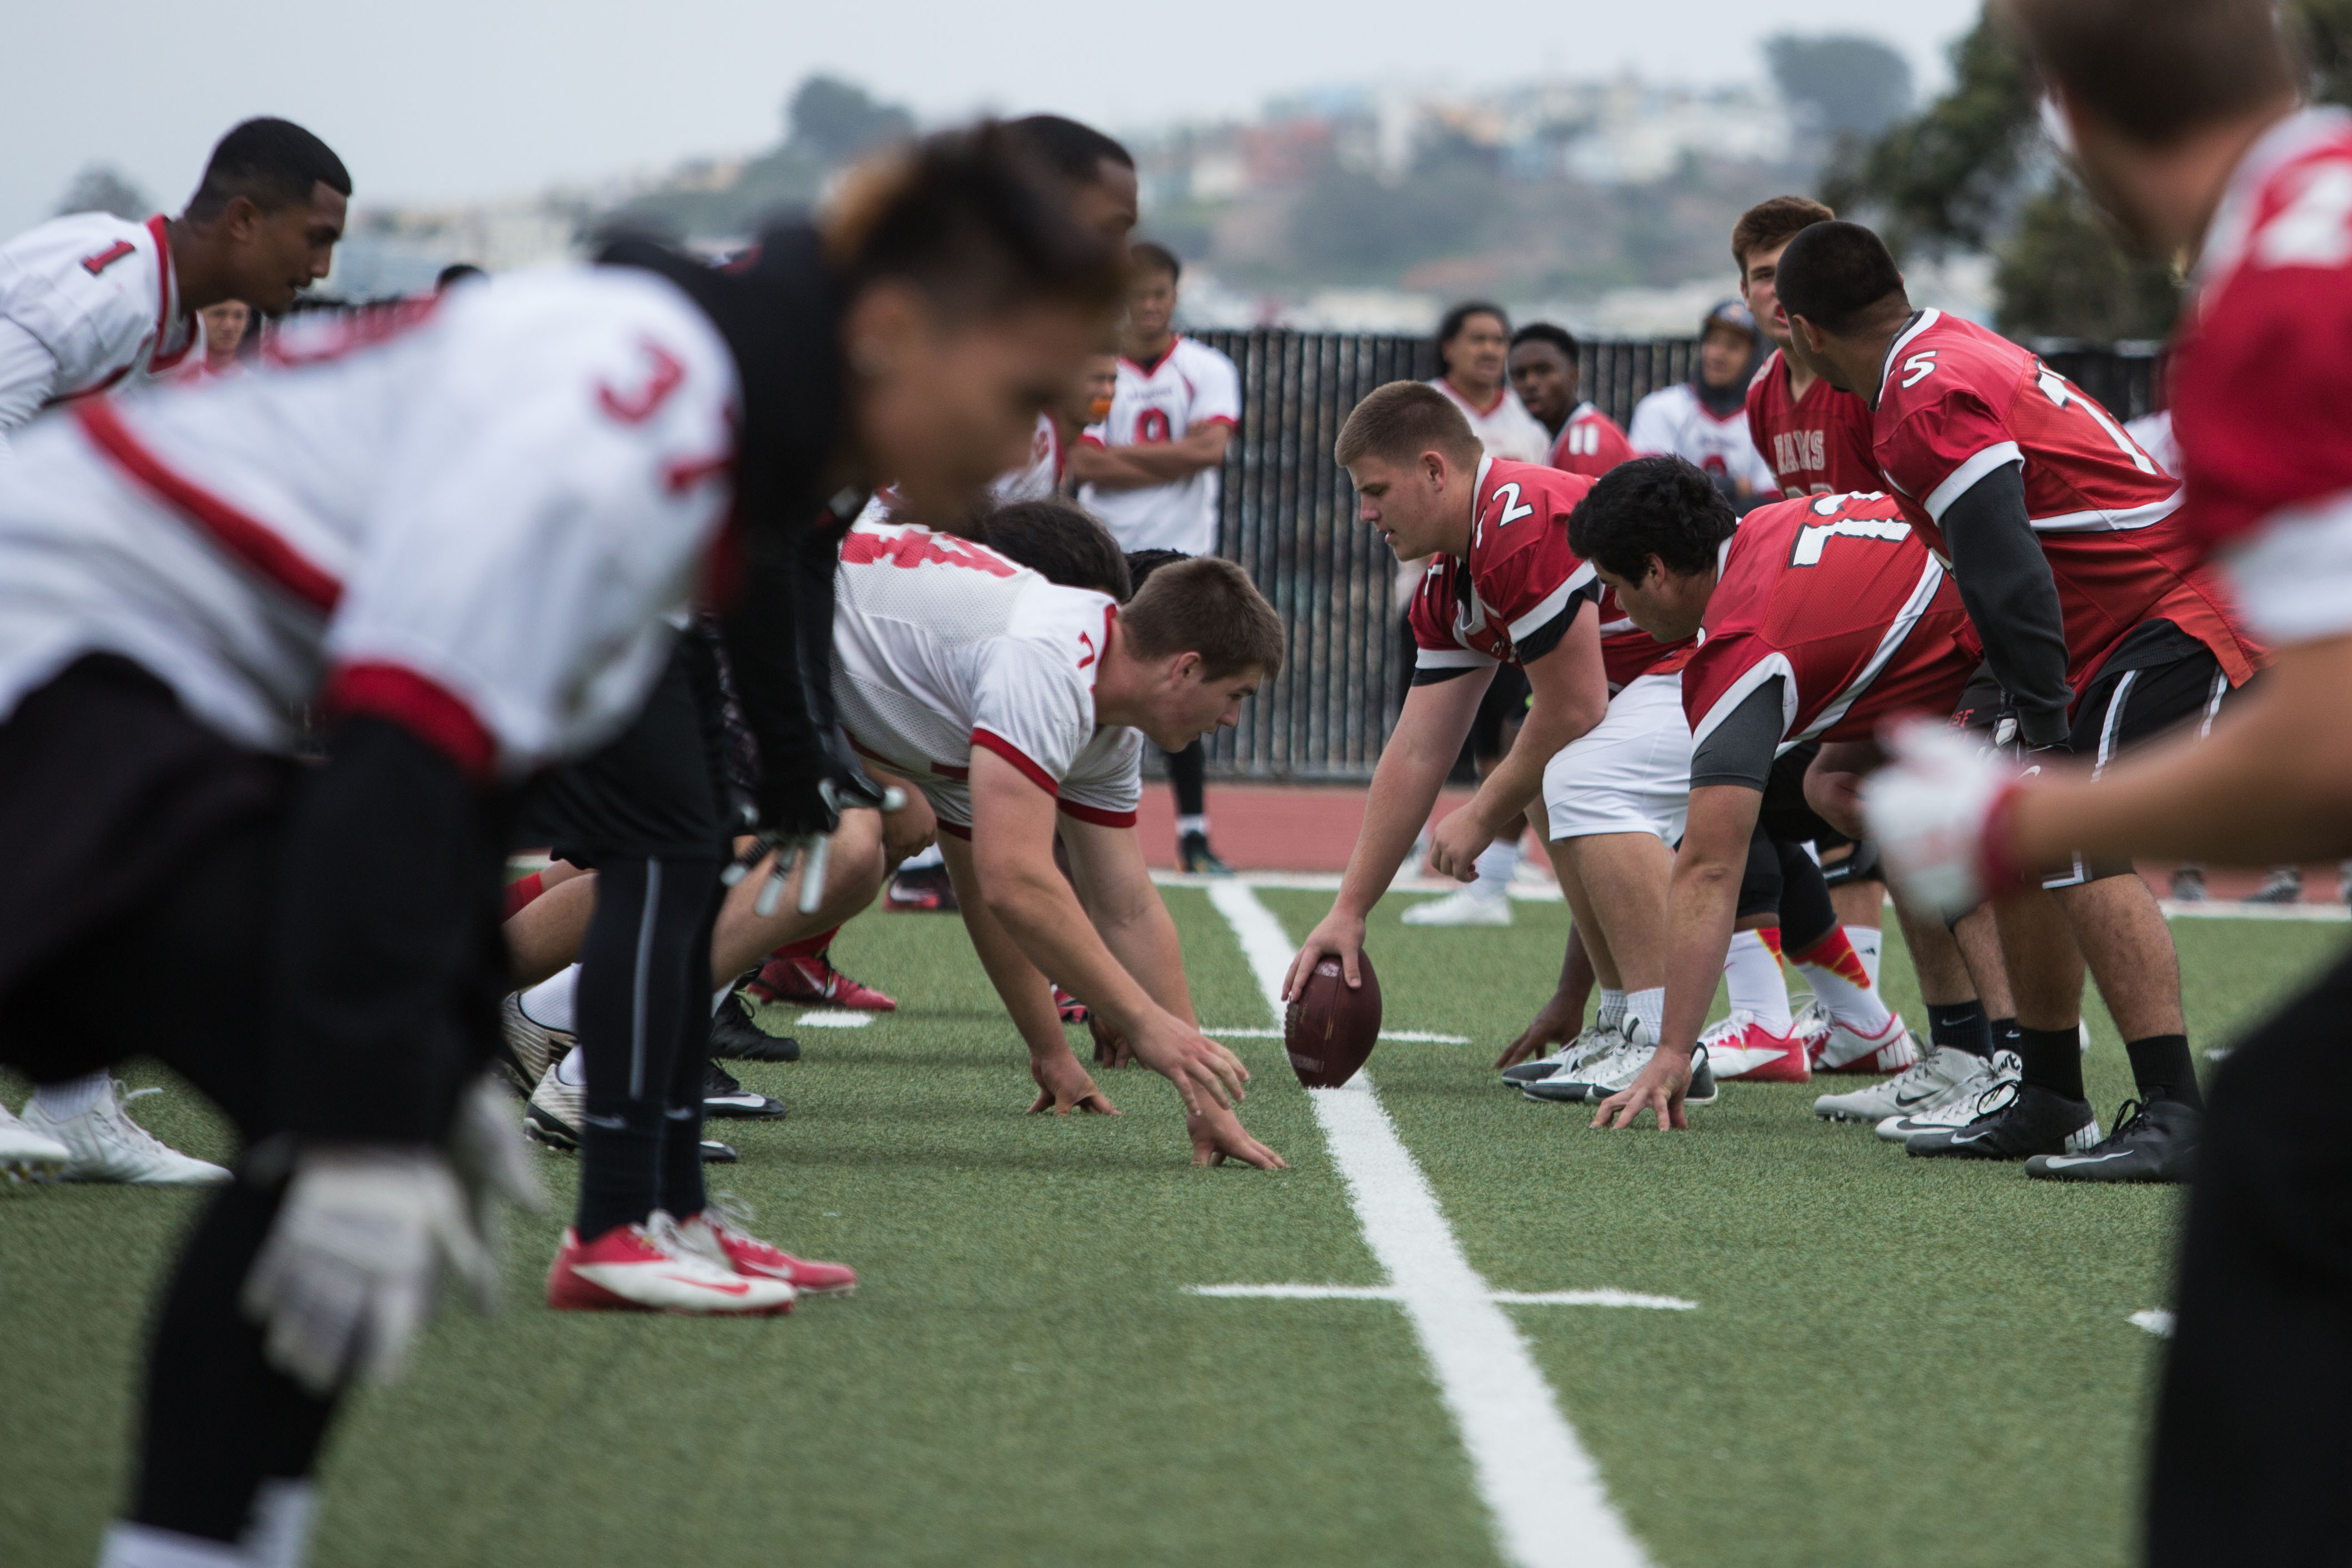 The Rams practice for their upcoming football season at rams stadium on August 10. (Photo by Khaled Sayed)